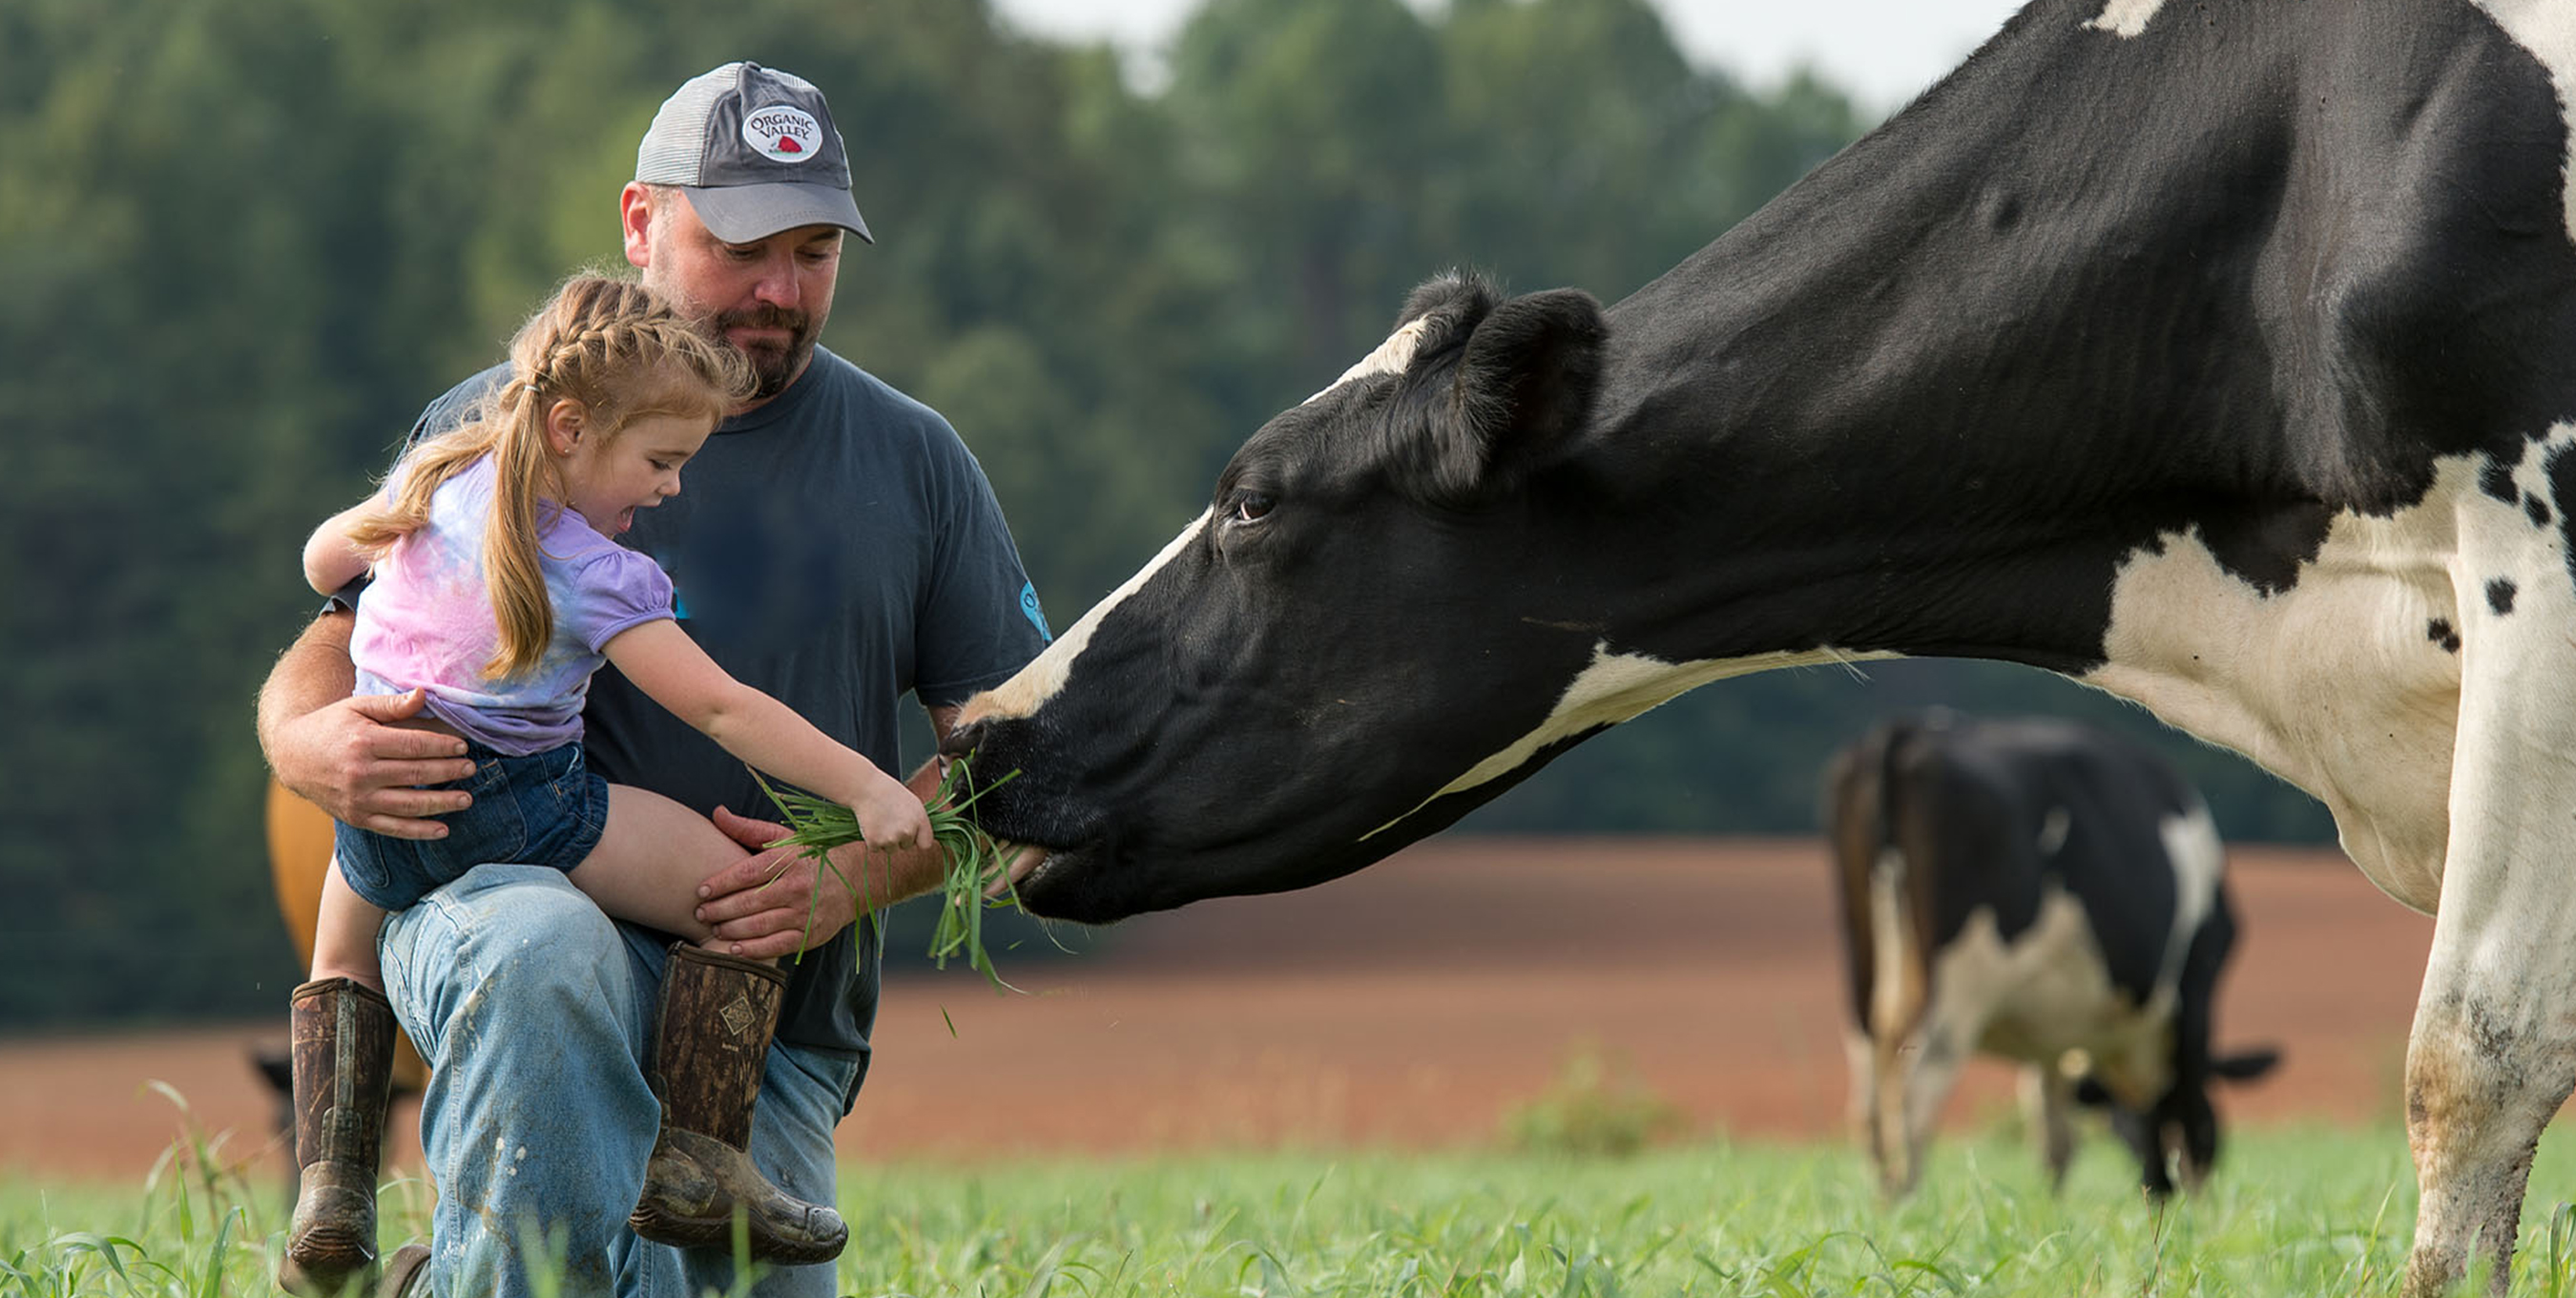 Organic Valley Ends Year Standing Strong with 2,000 Farm Families